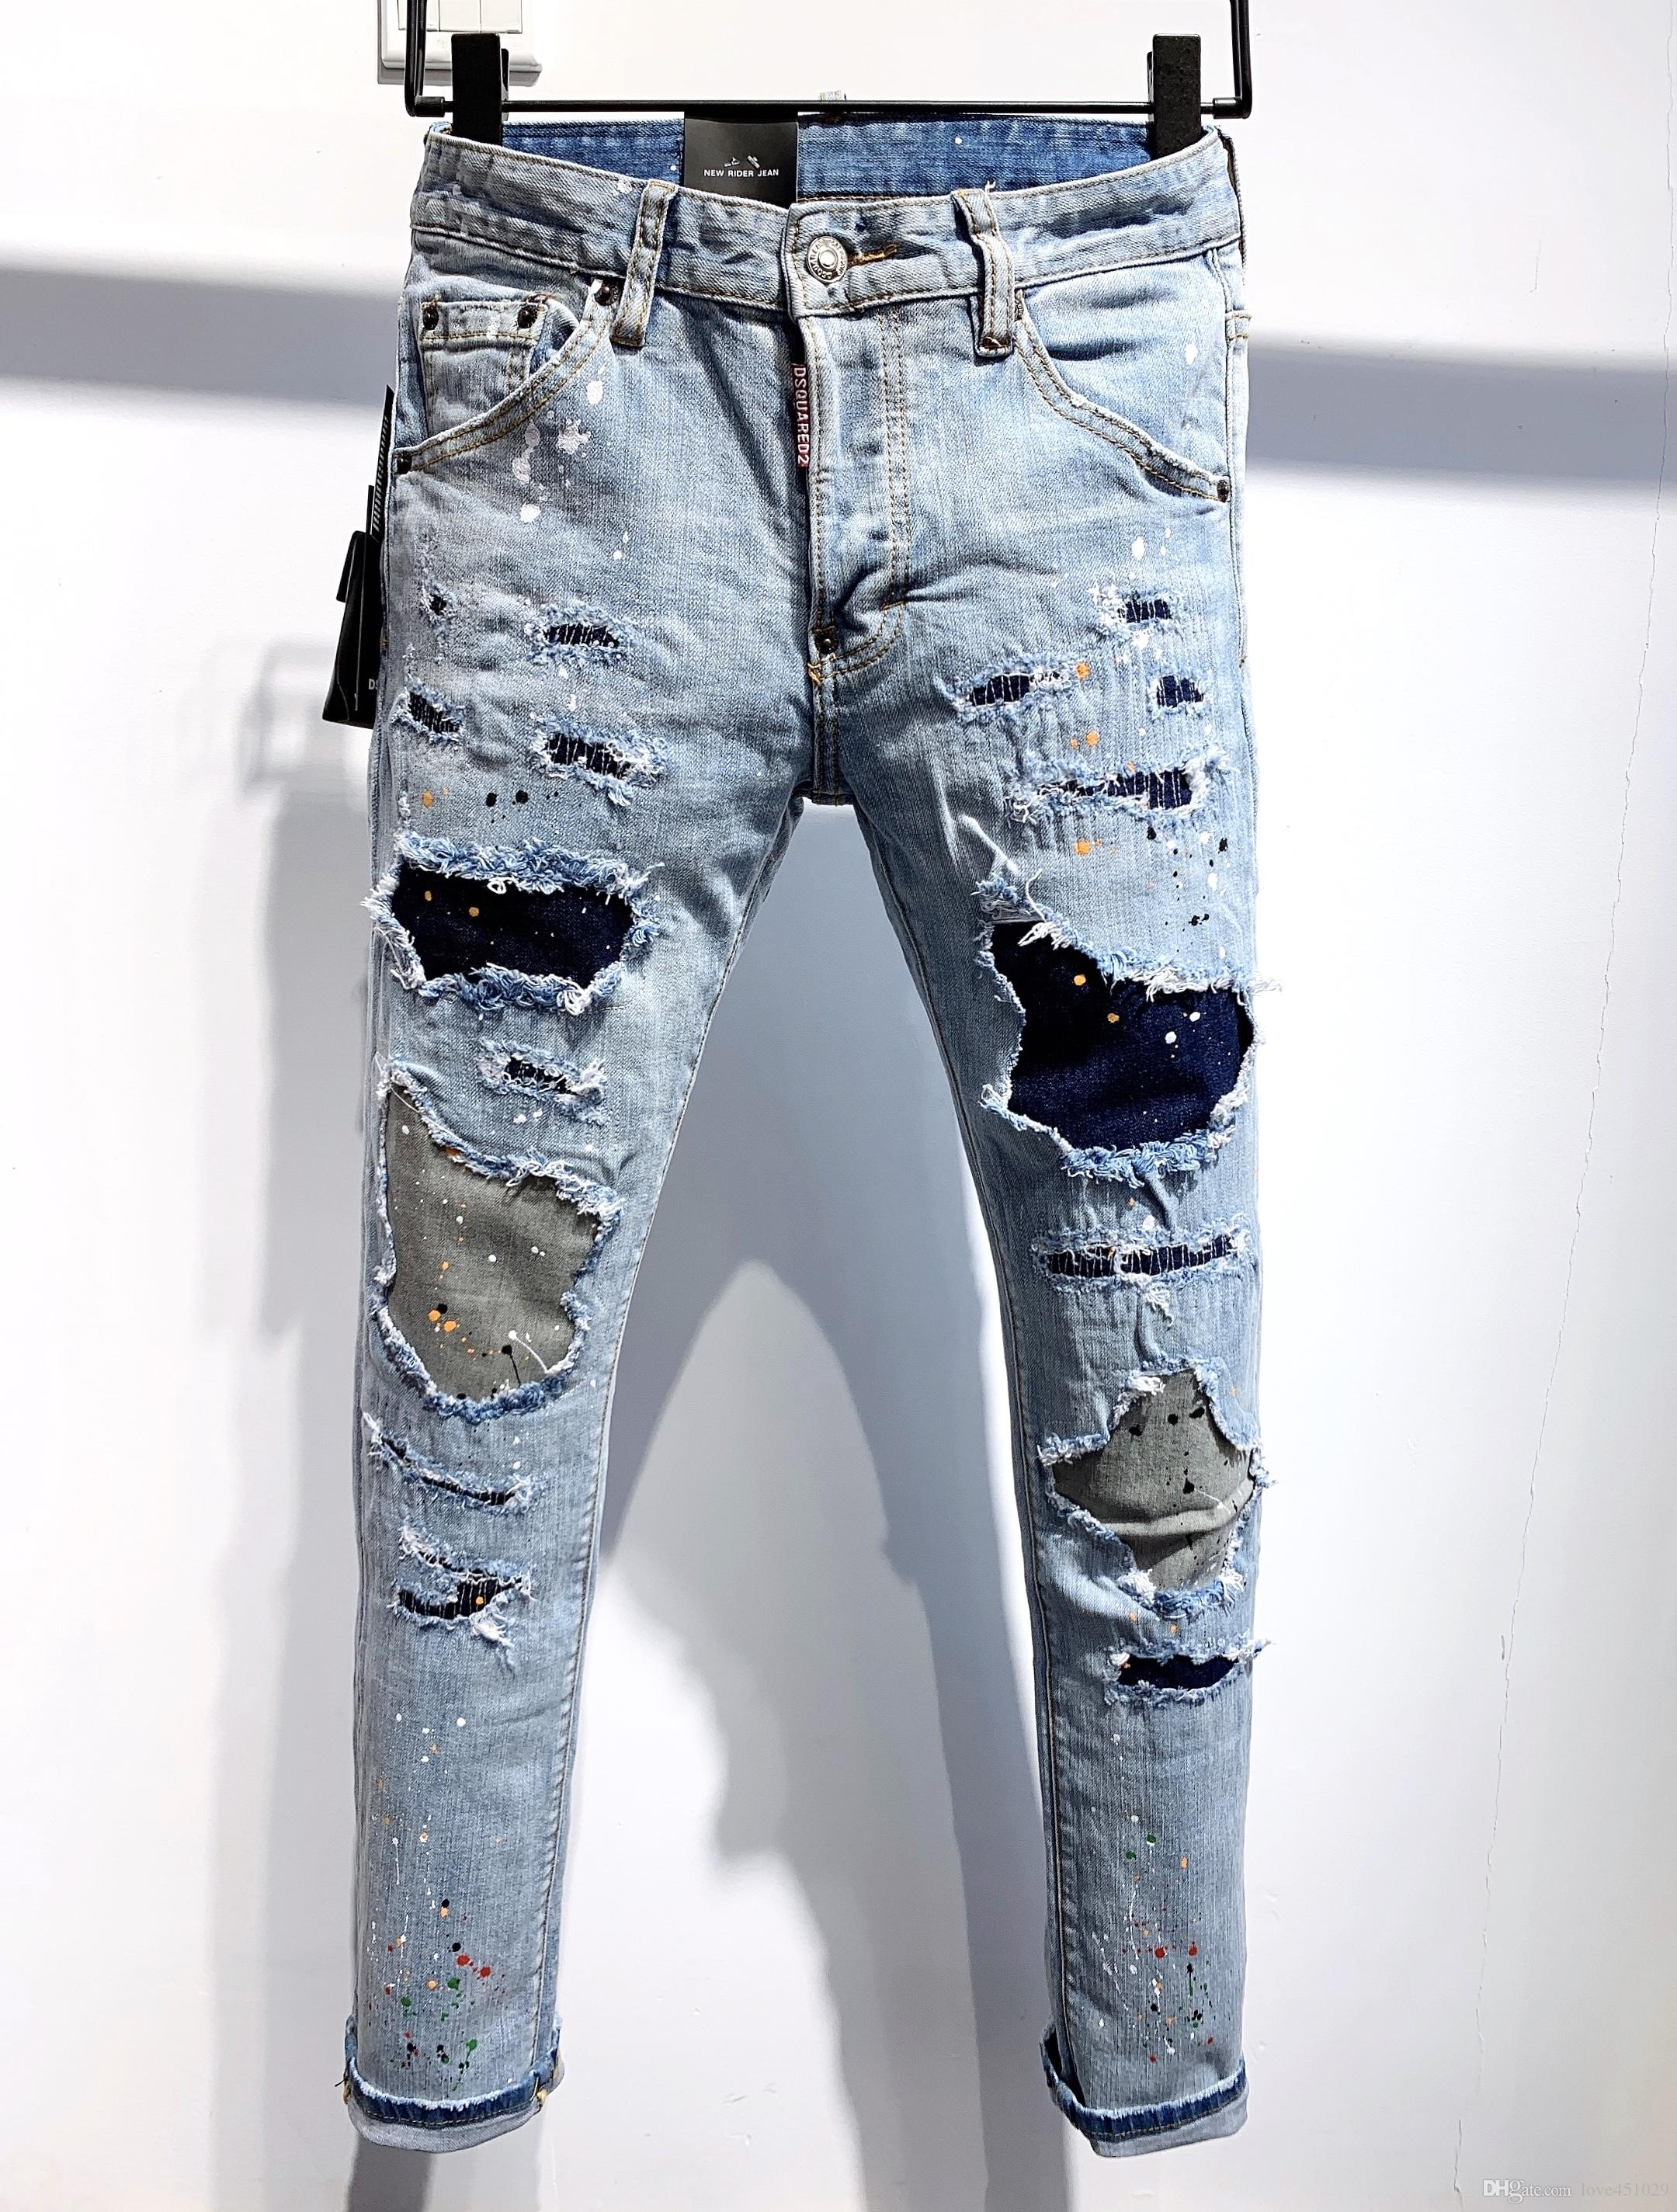 2020 Jeans Mens Distressed rasgado Biker Jeans Slim Fit Motociclista Denim desenhador de moda Pants Hip Hop Jeans Mens 01